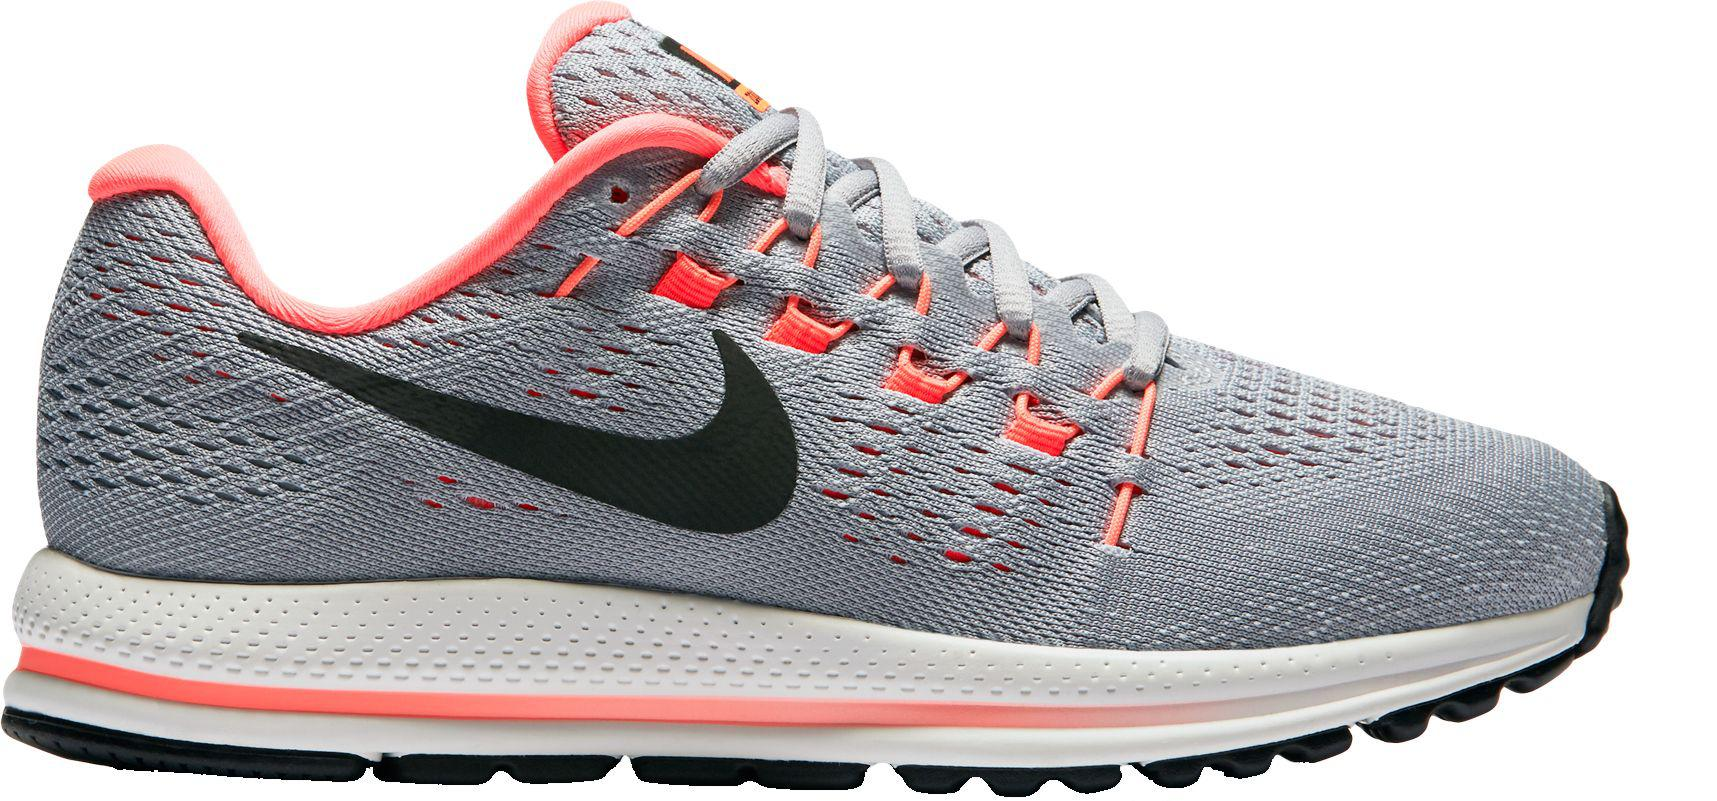 half off 55faf 5199f nike-GreyBlack-Air-Zoom-Vomero-12-Running-Shoes.jpeg